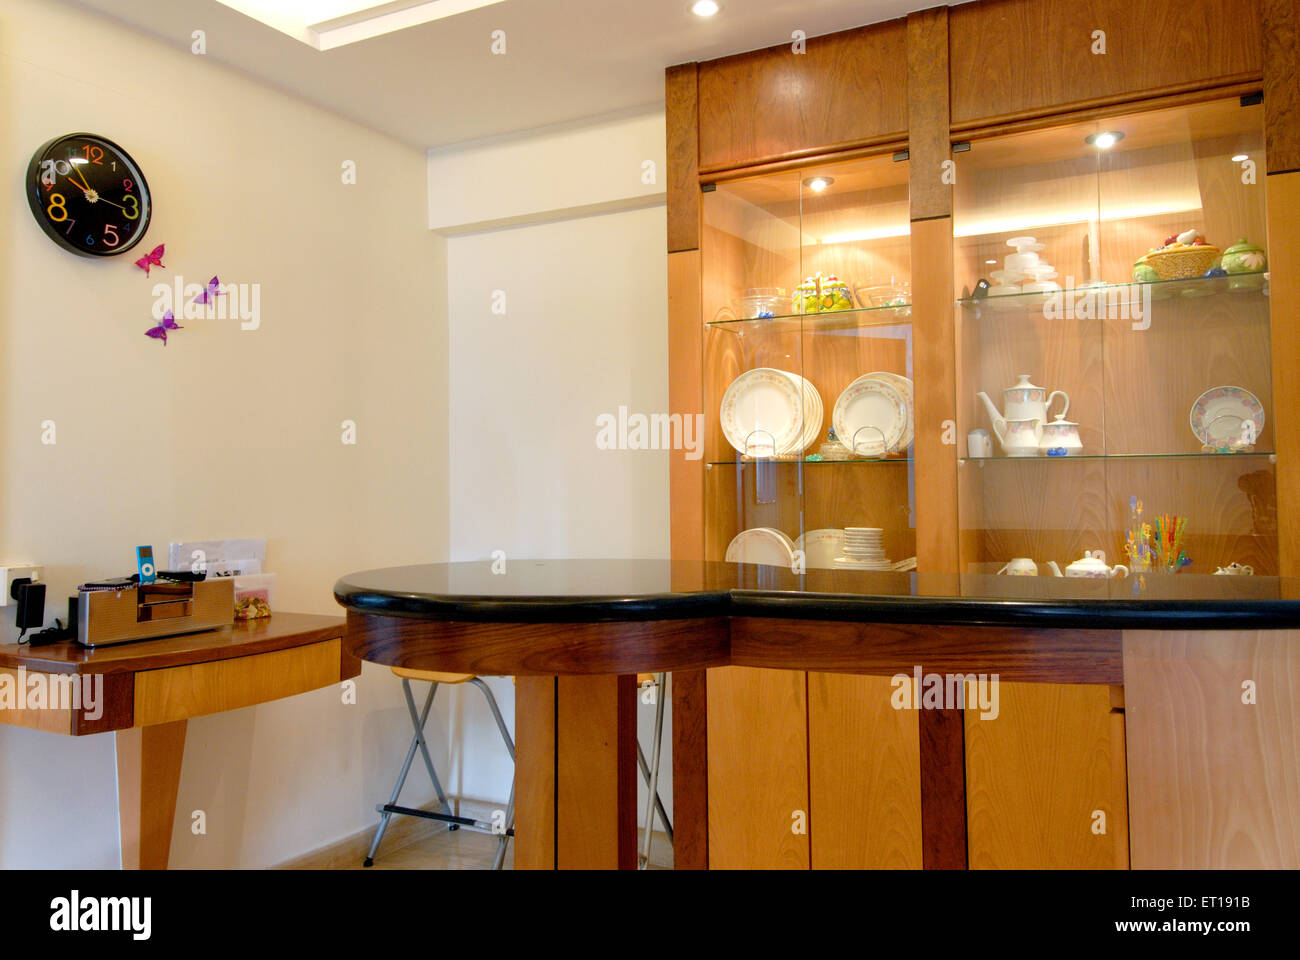 Interior of showcase in house - Stock Image